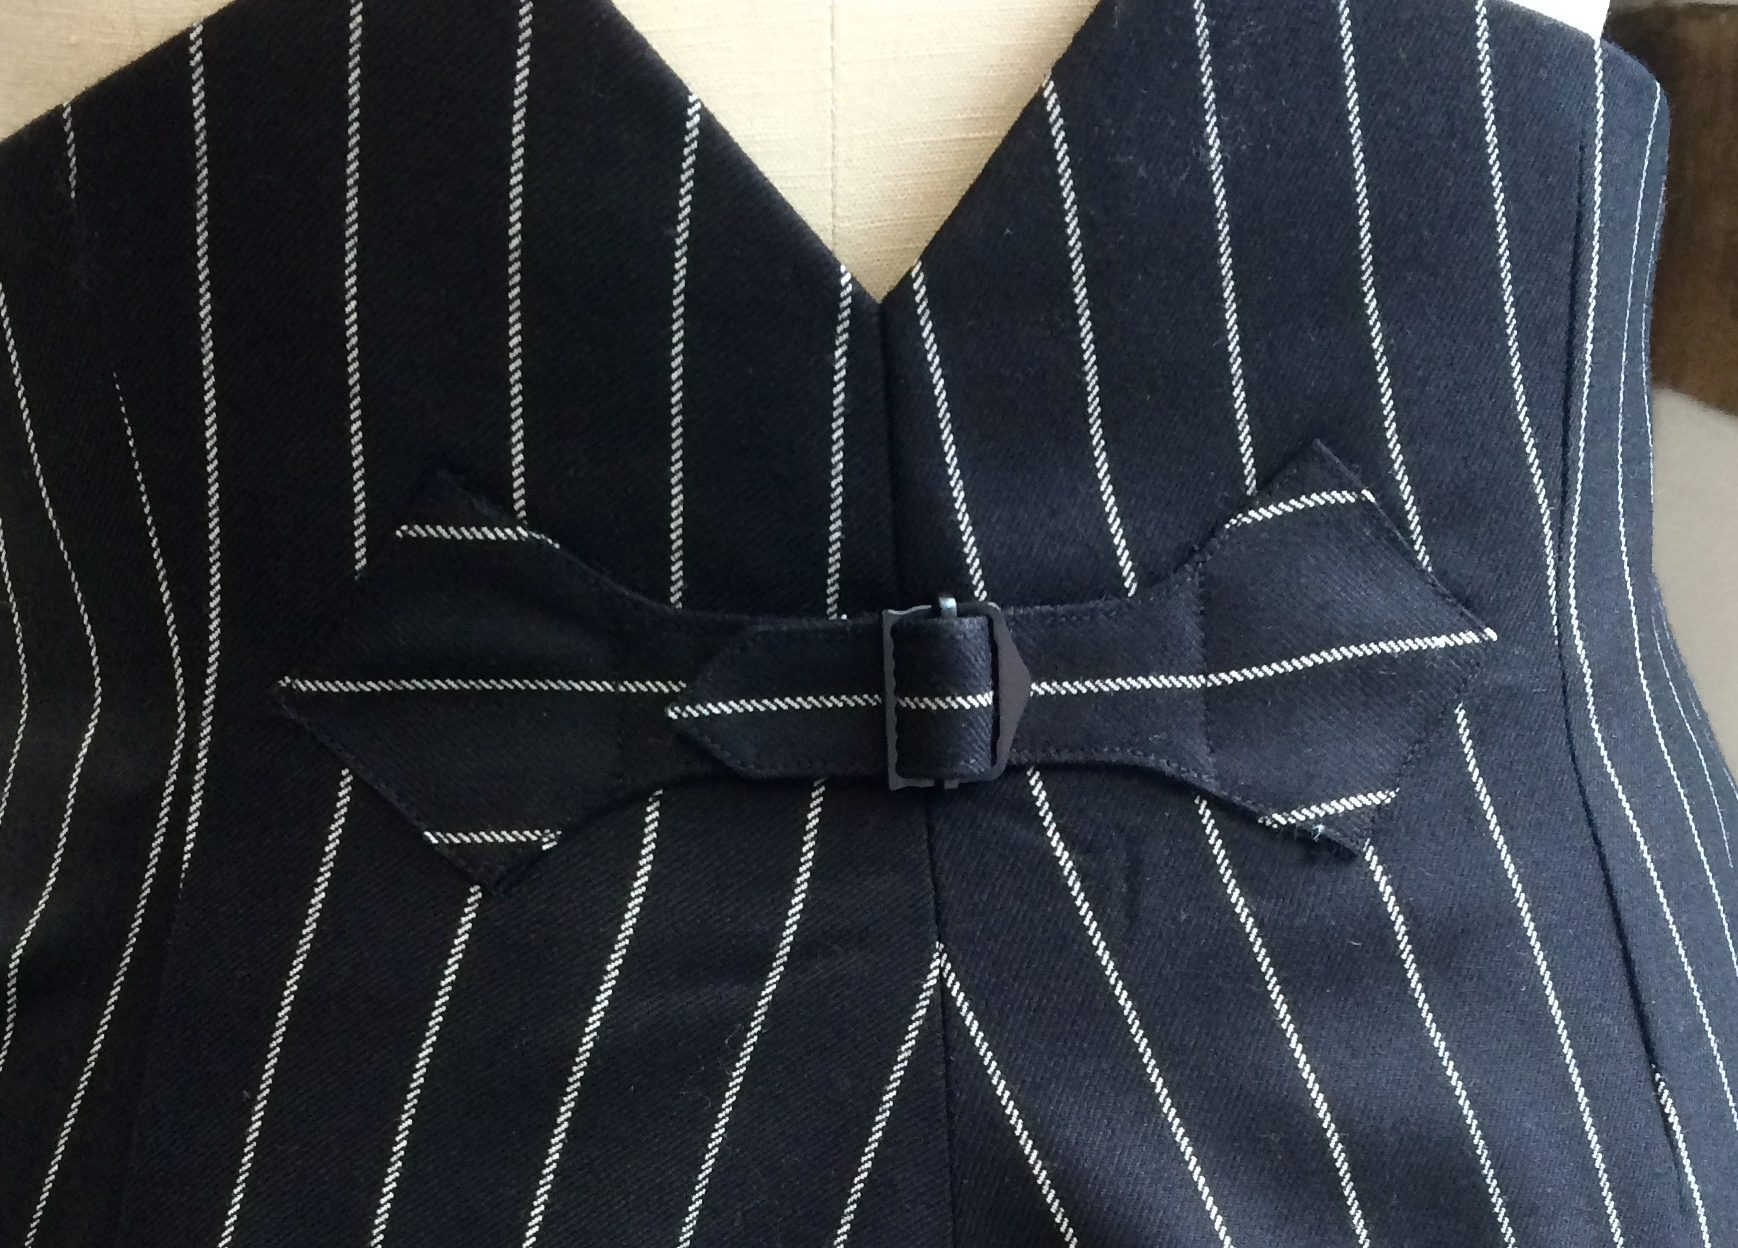 Bespoke Ladies Gangster Pinstripe Trousers